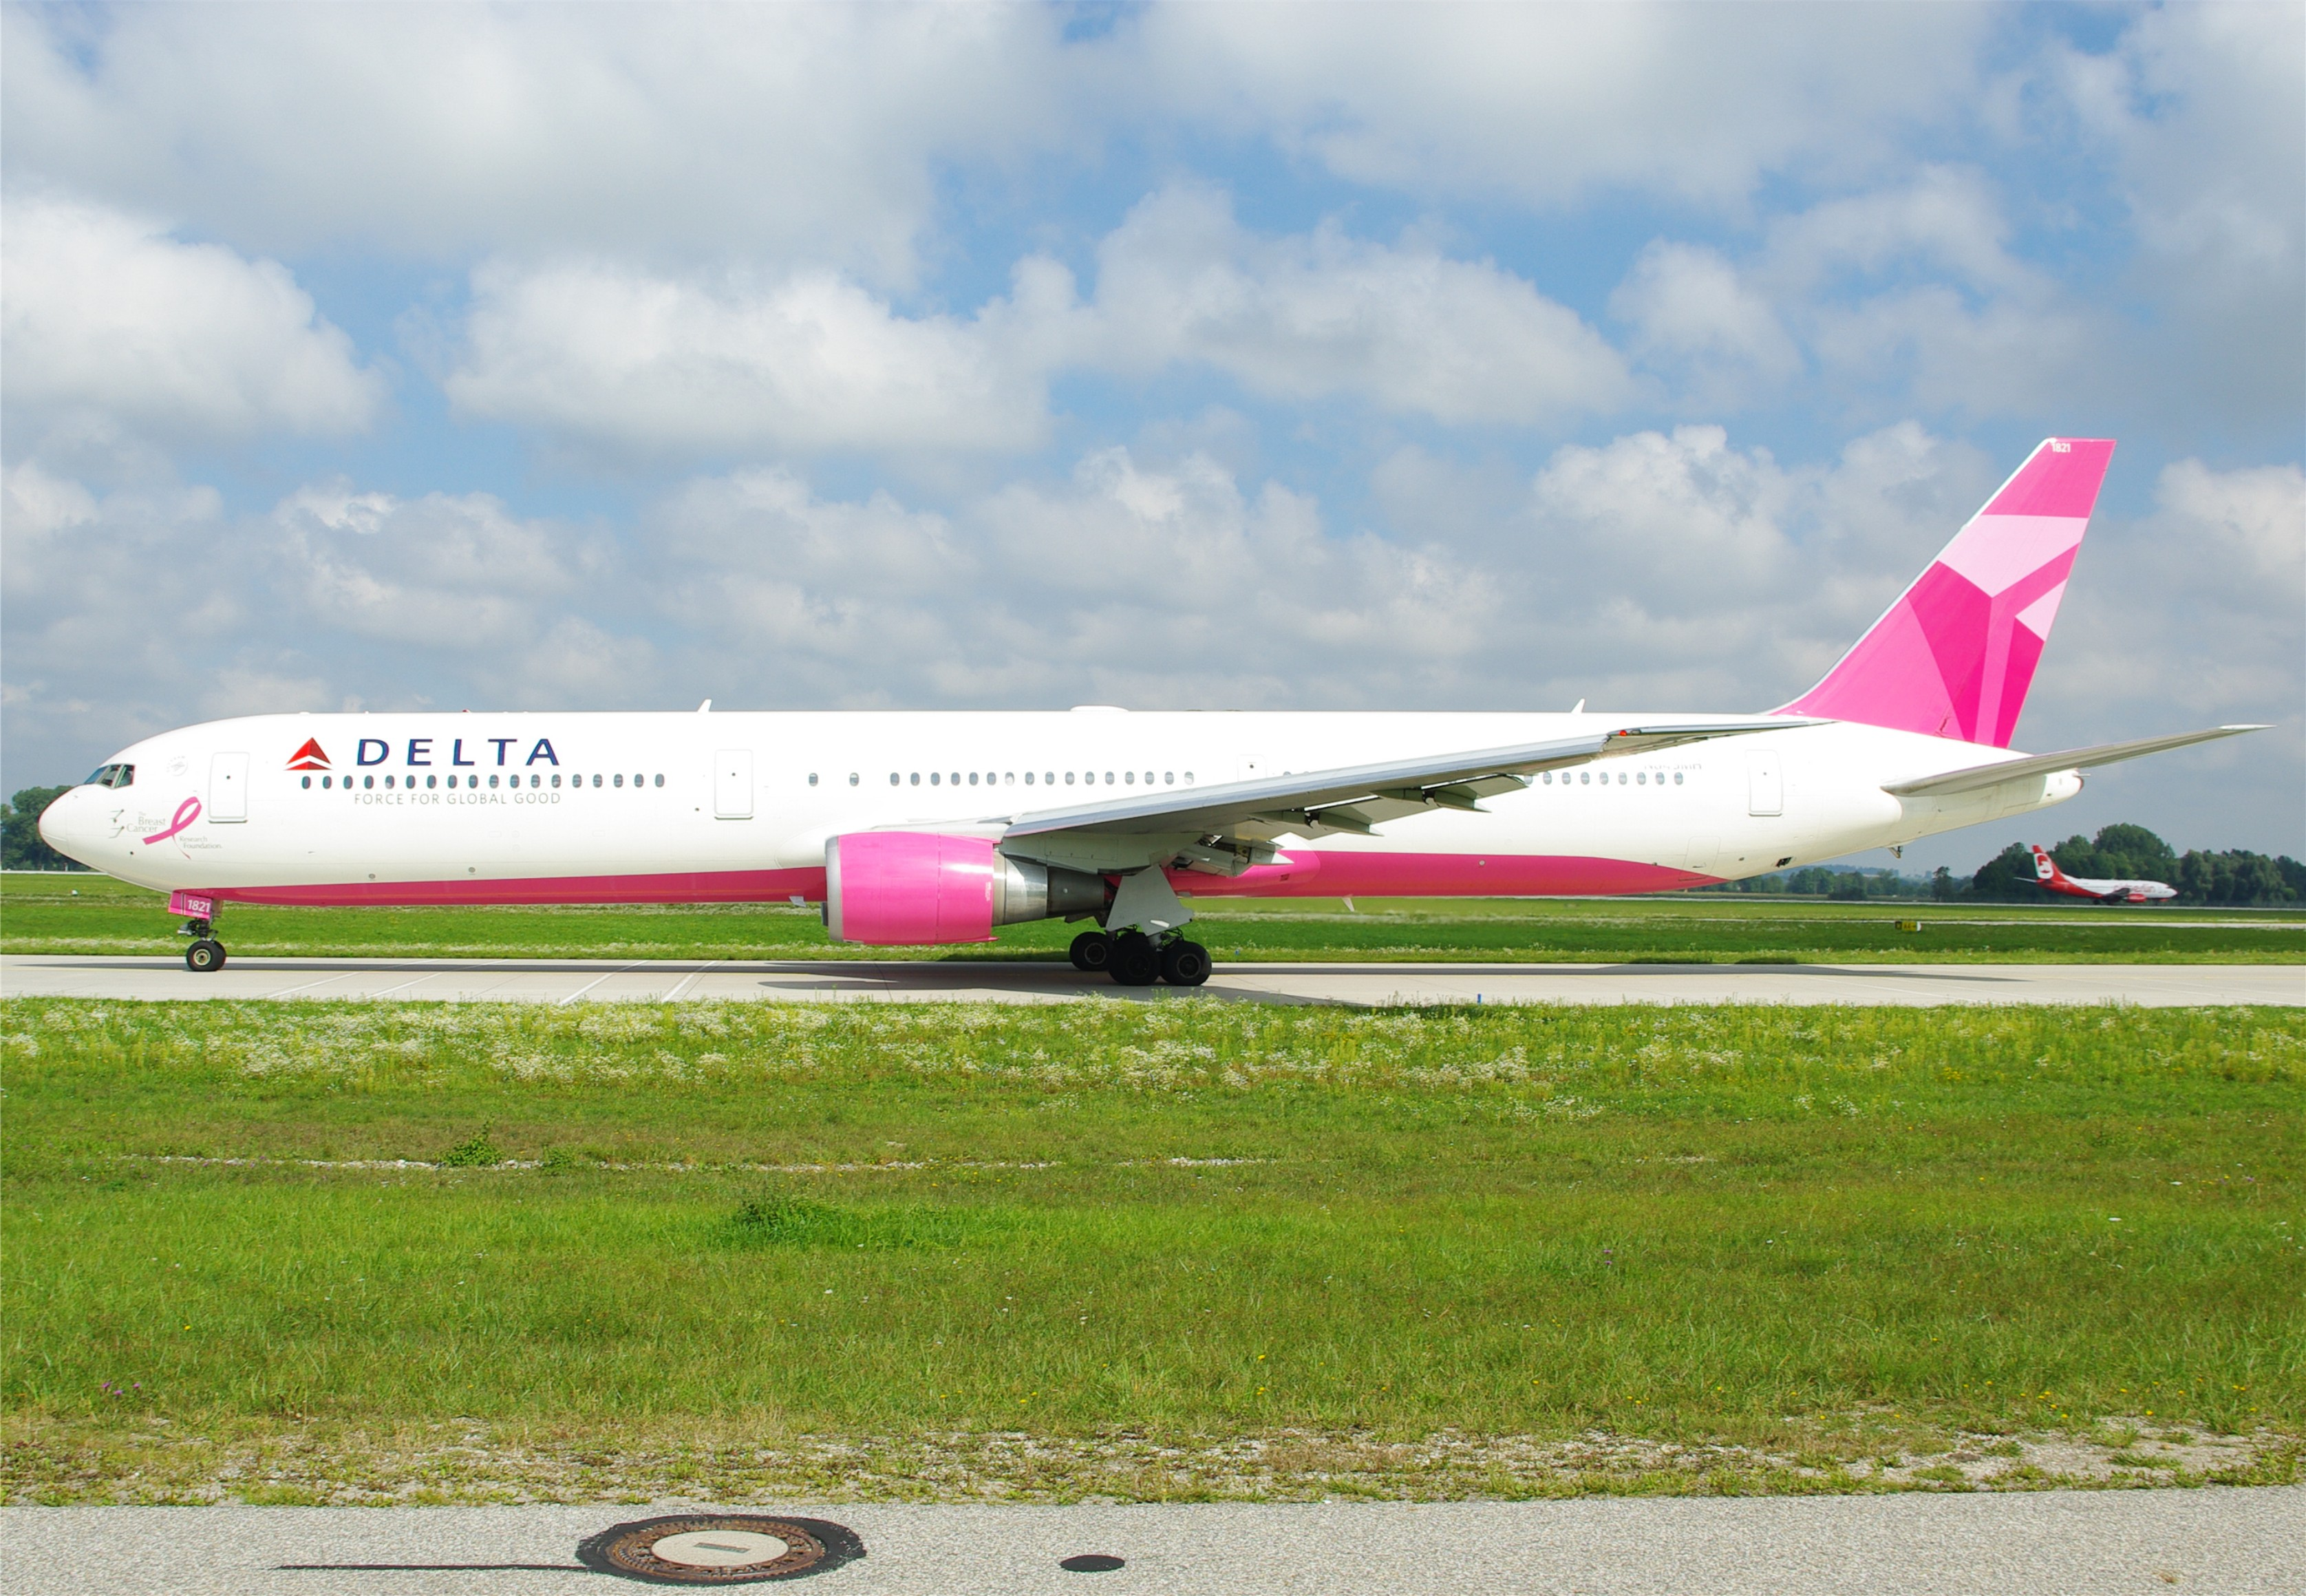 Boeing 767-400er Painted in